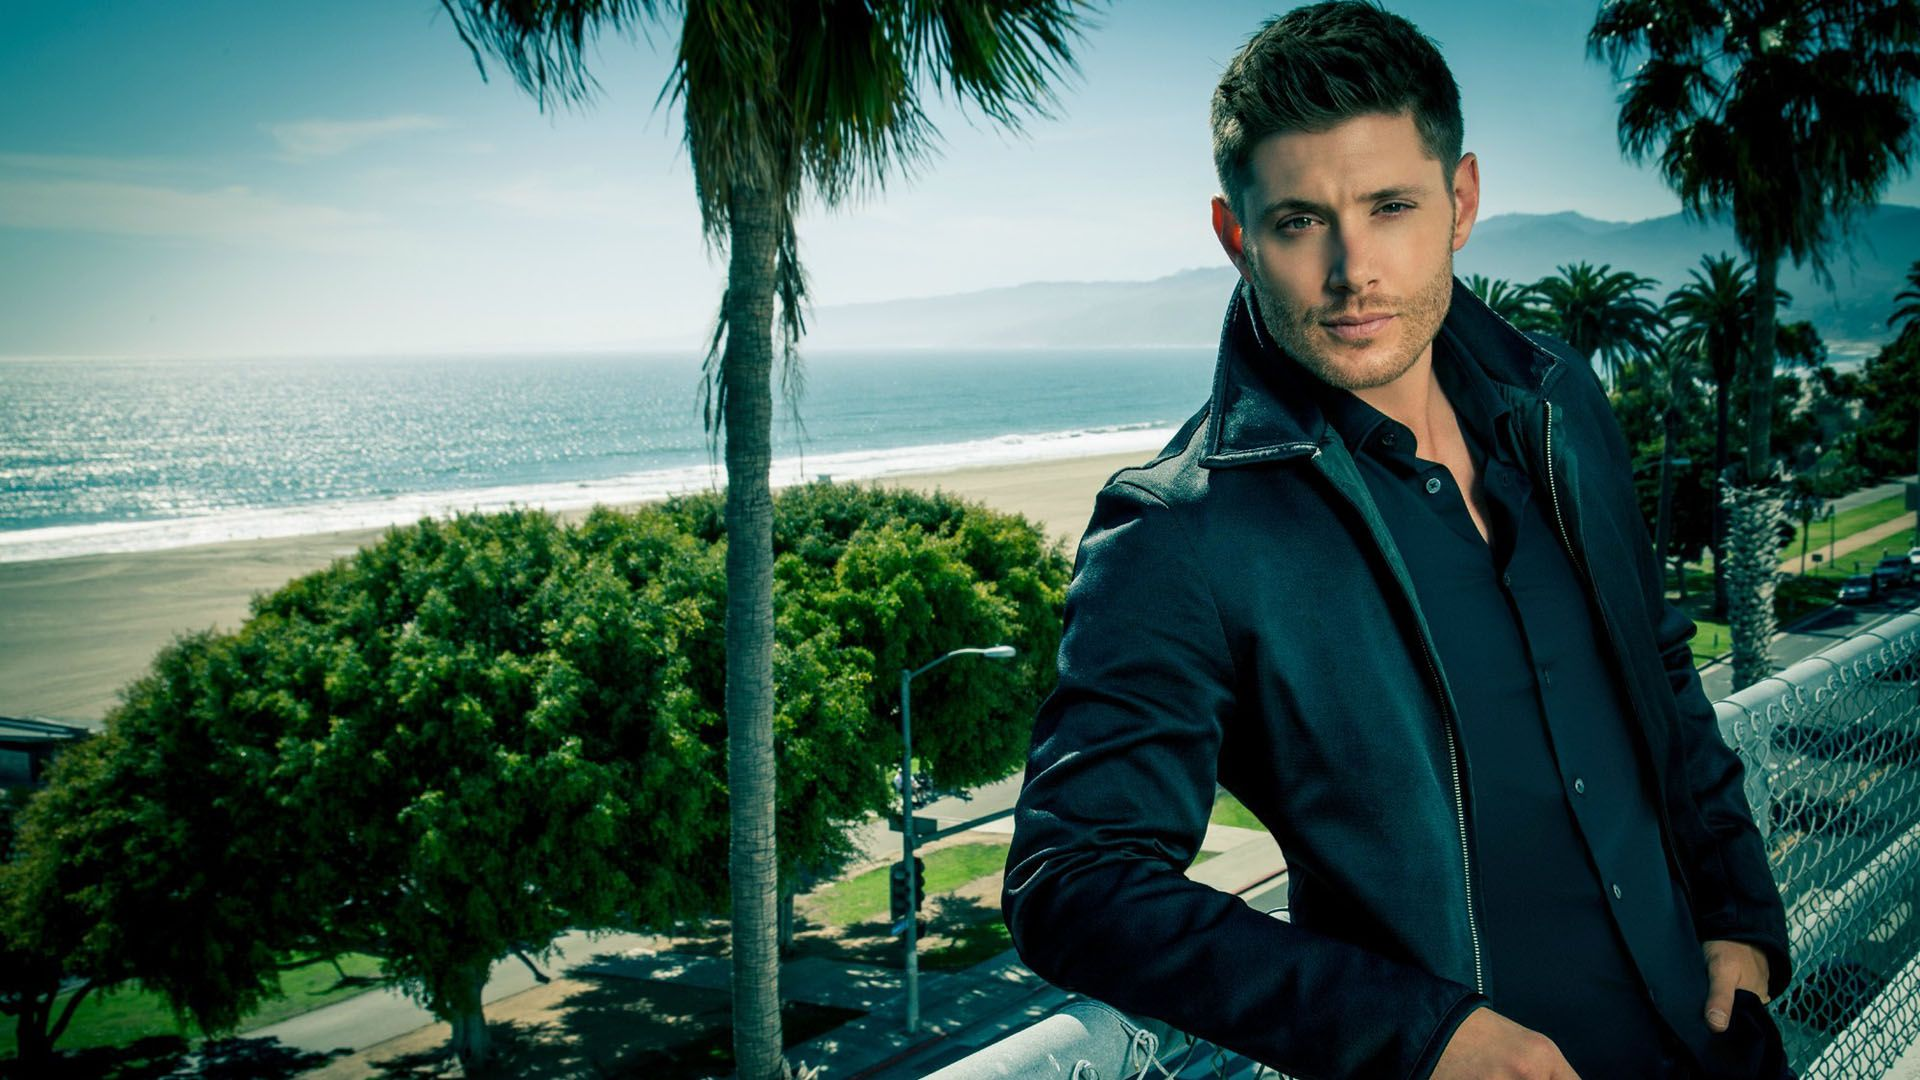 HD Jensen Ackles Wallpapers 13 1920x1080